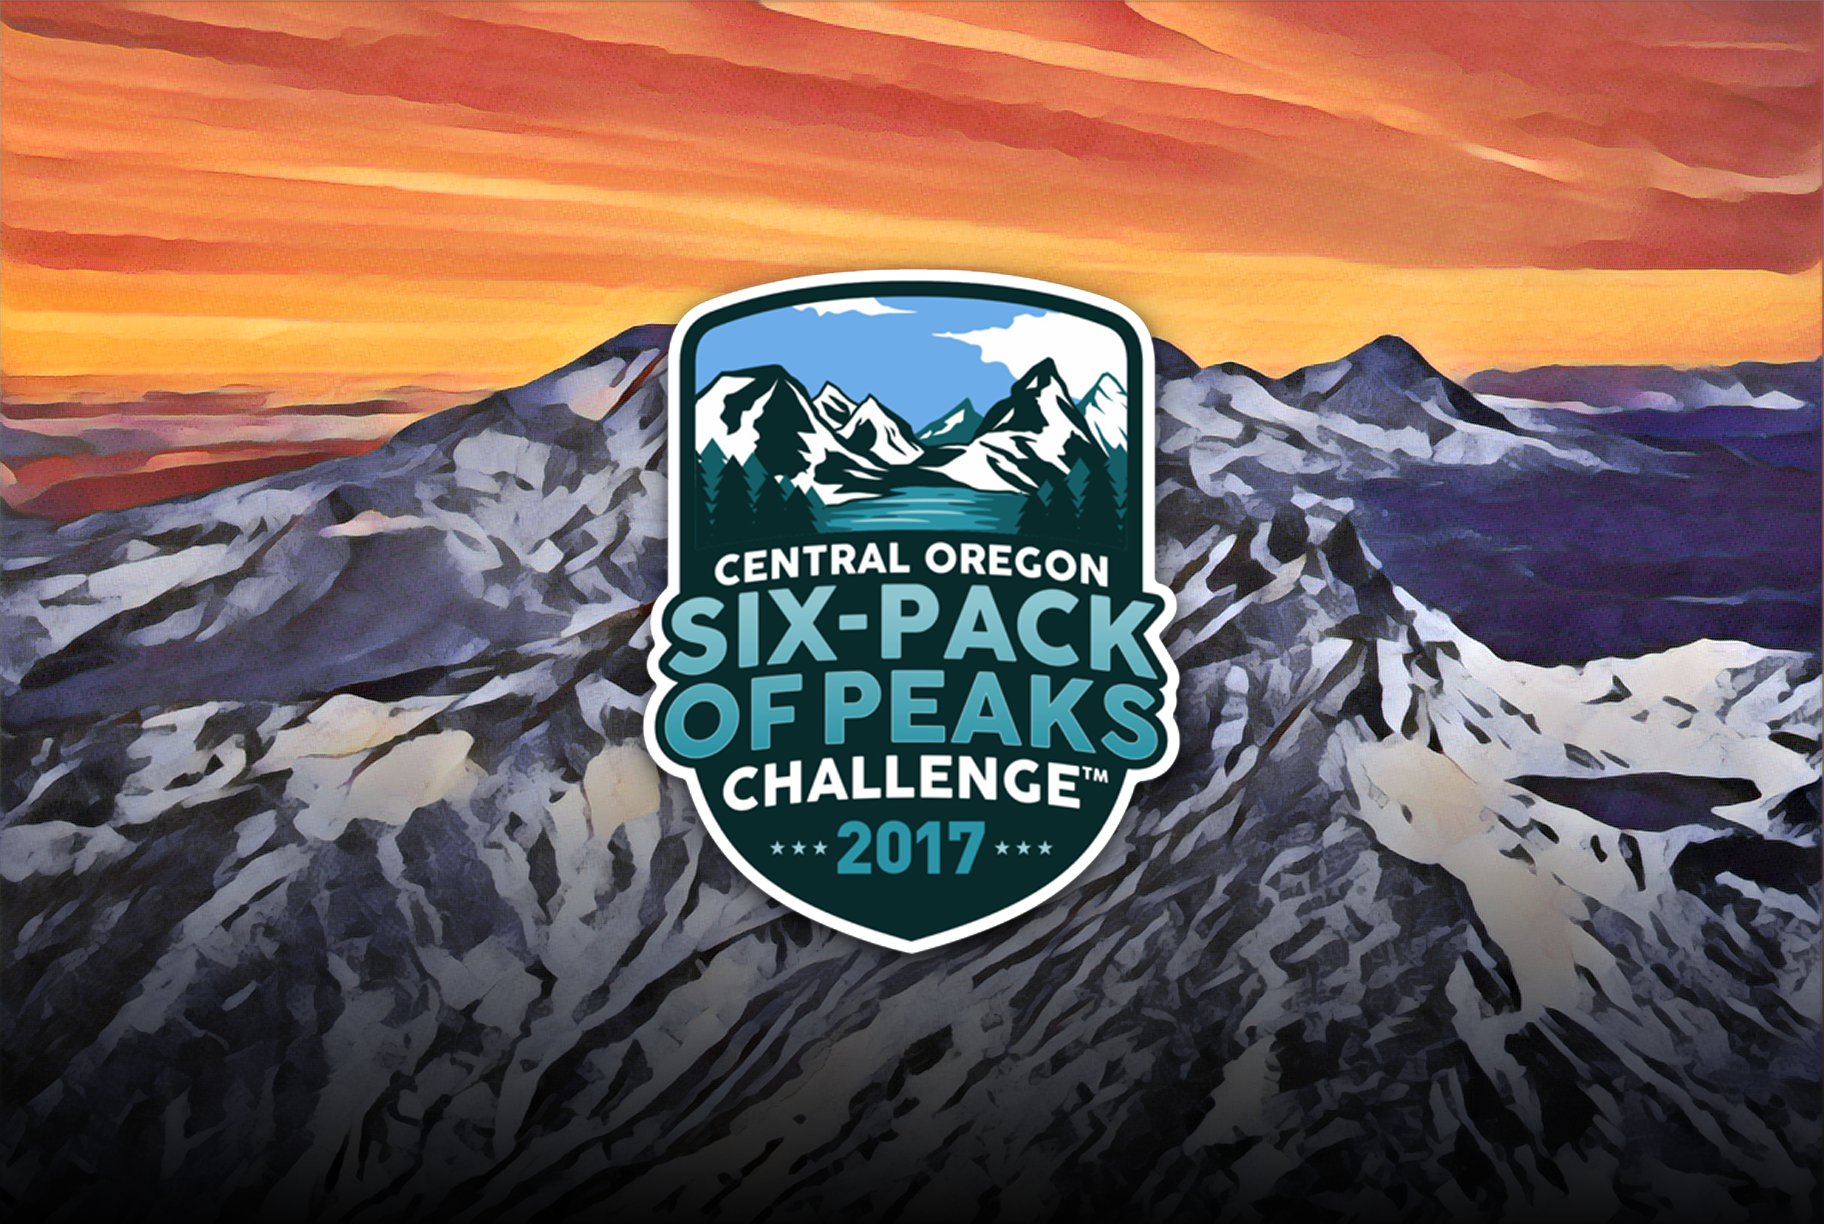 Announcing the Inaugural Central Oregon Six-Pack of Peaks Challenge™